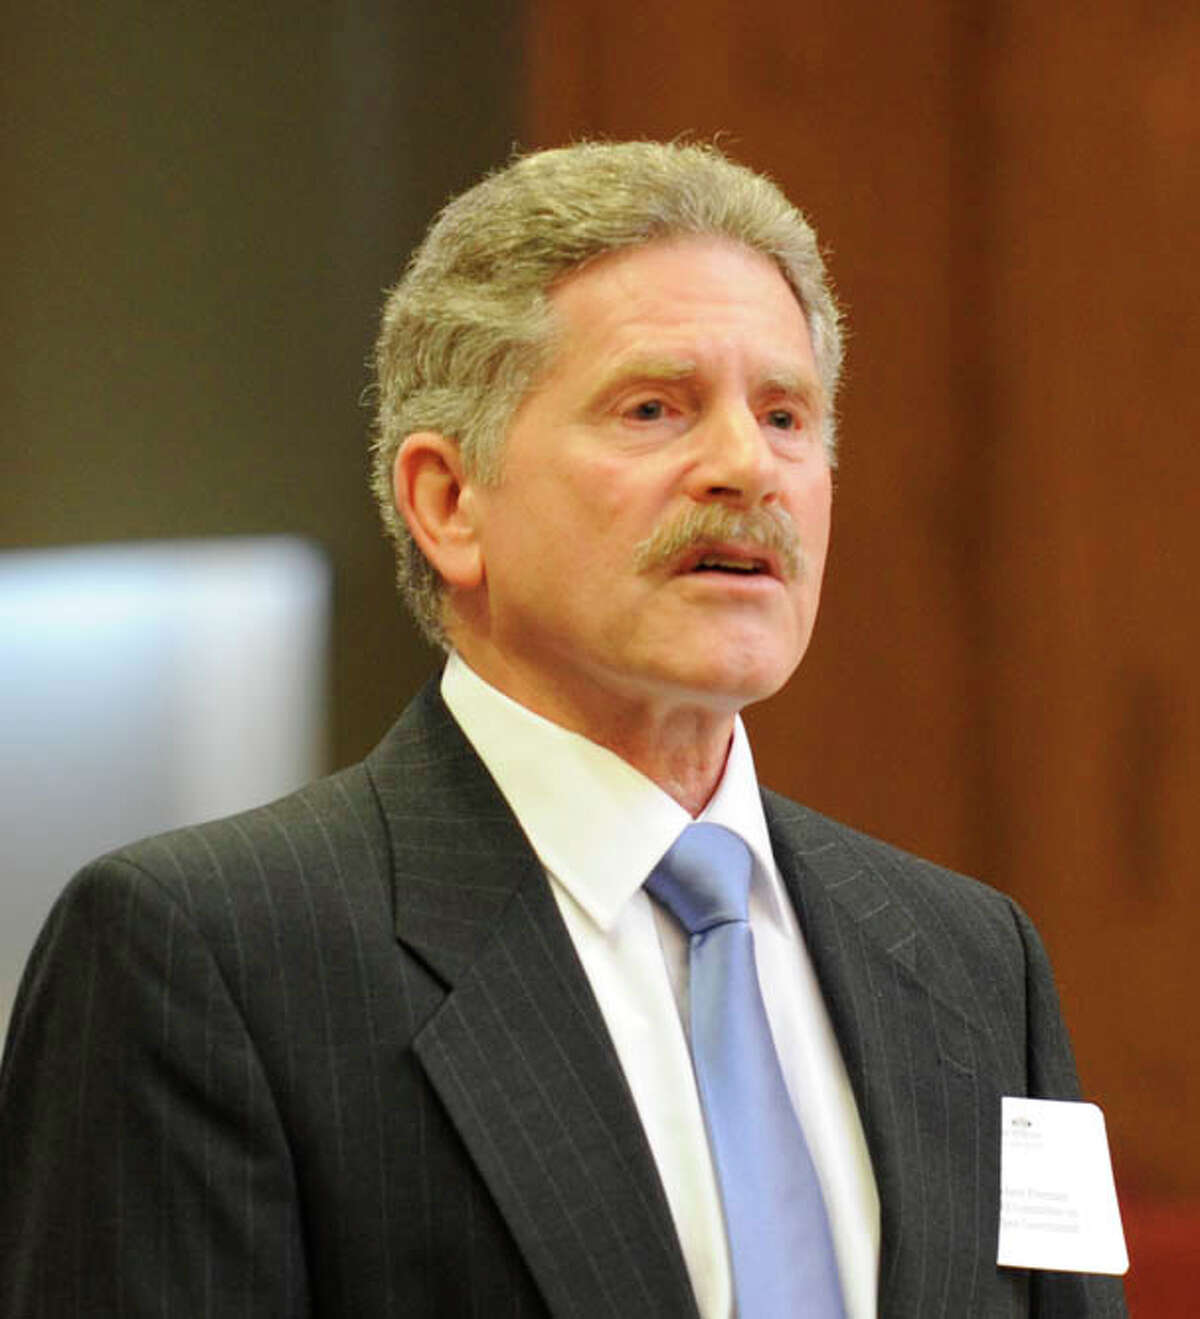 Robert Freeman.,Executive Director, Committee on Open Government speaks at the Albany Law School in Albany, New York December 4, 2009. (Skip Dickstein / Times Union)